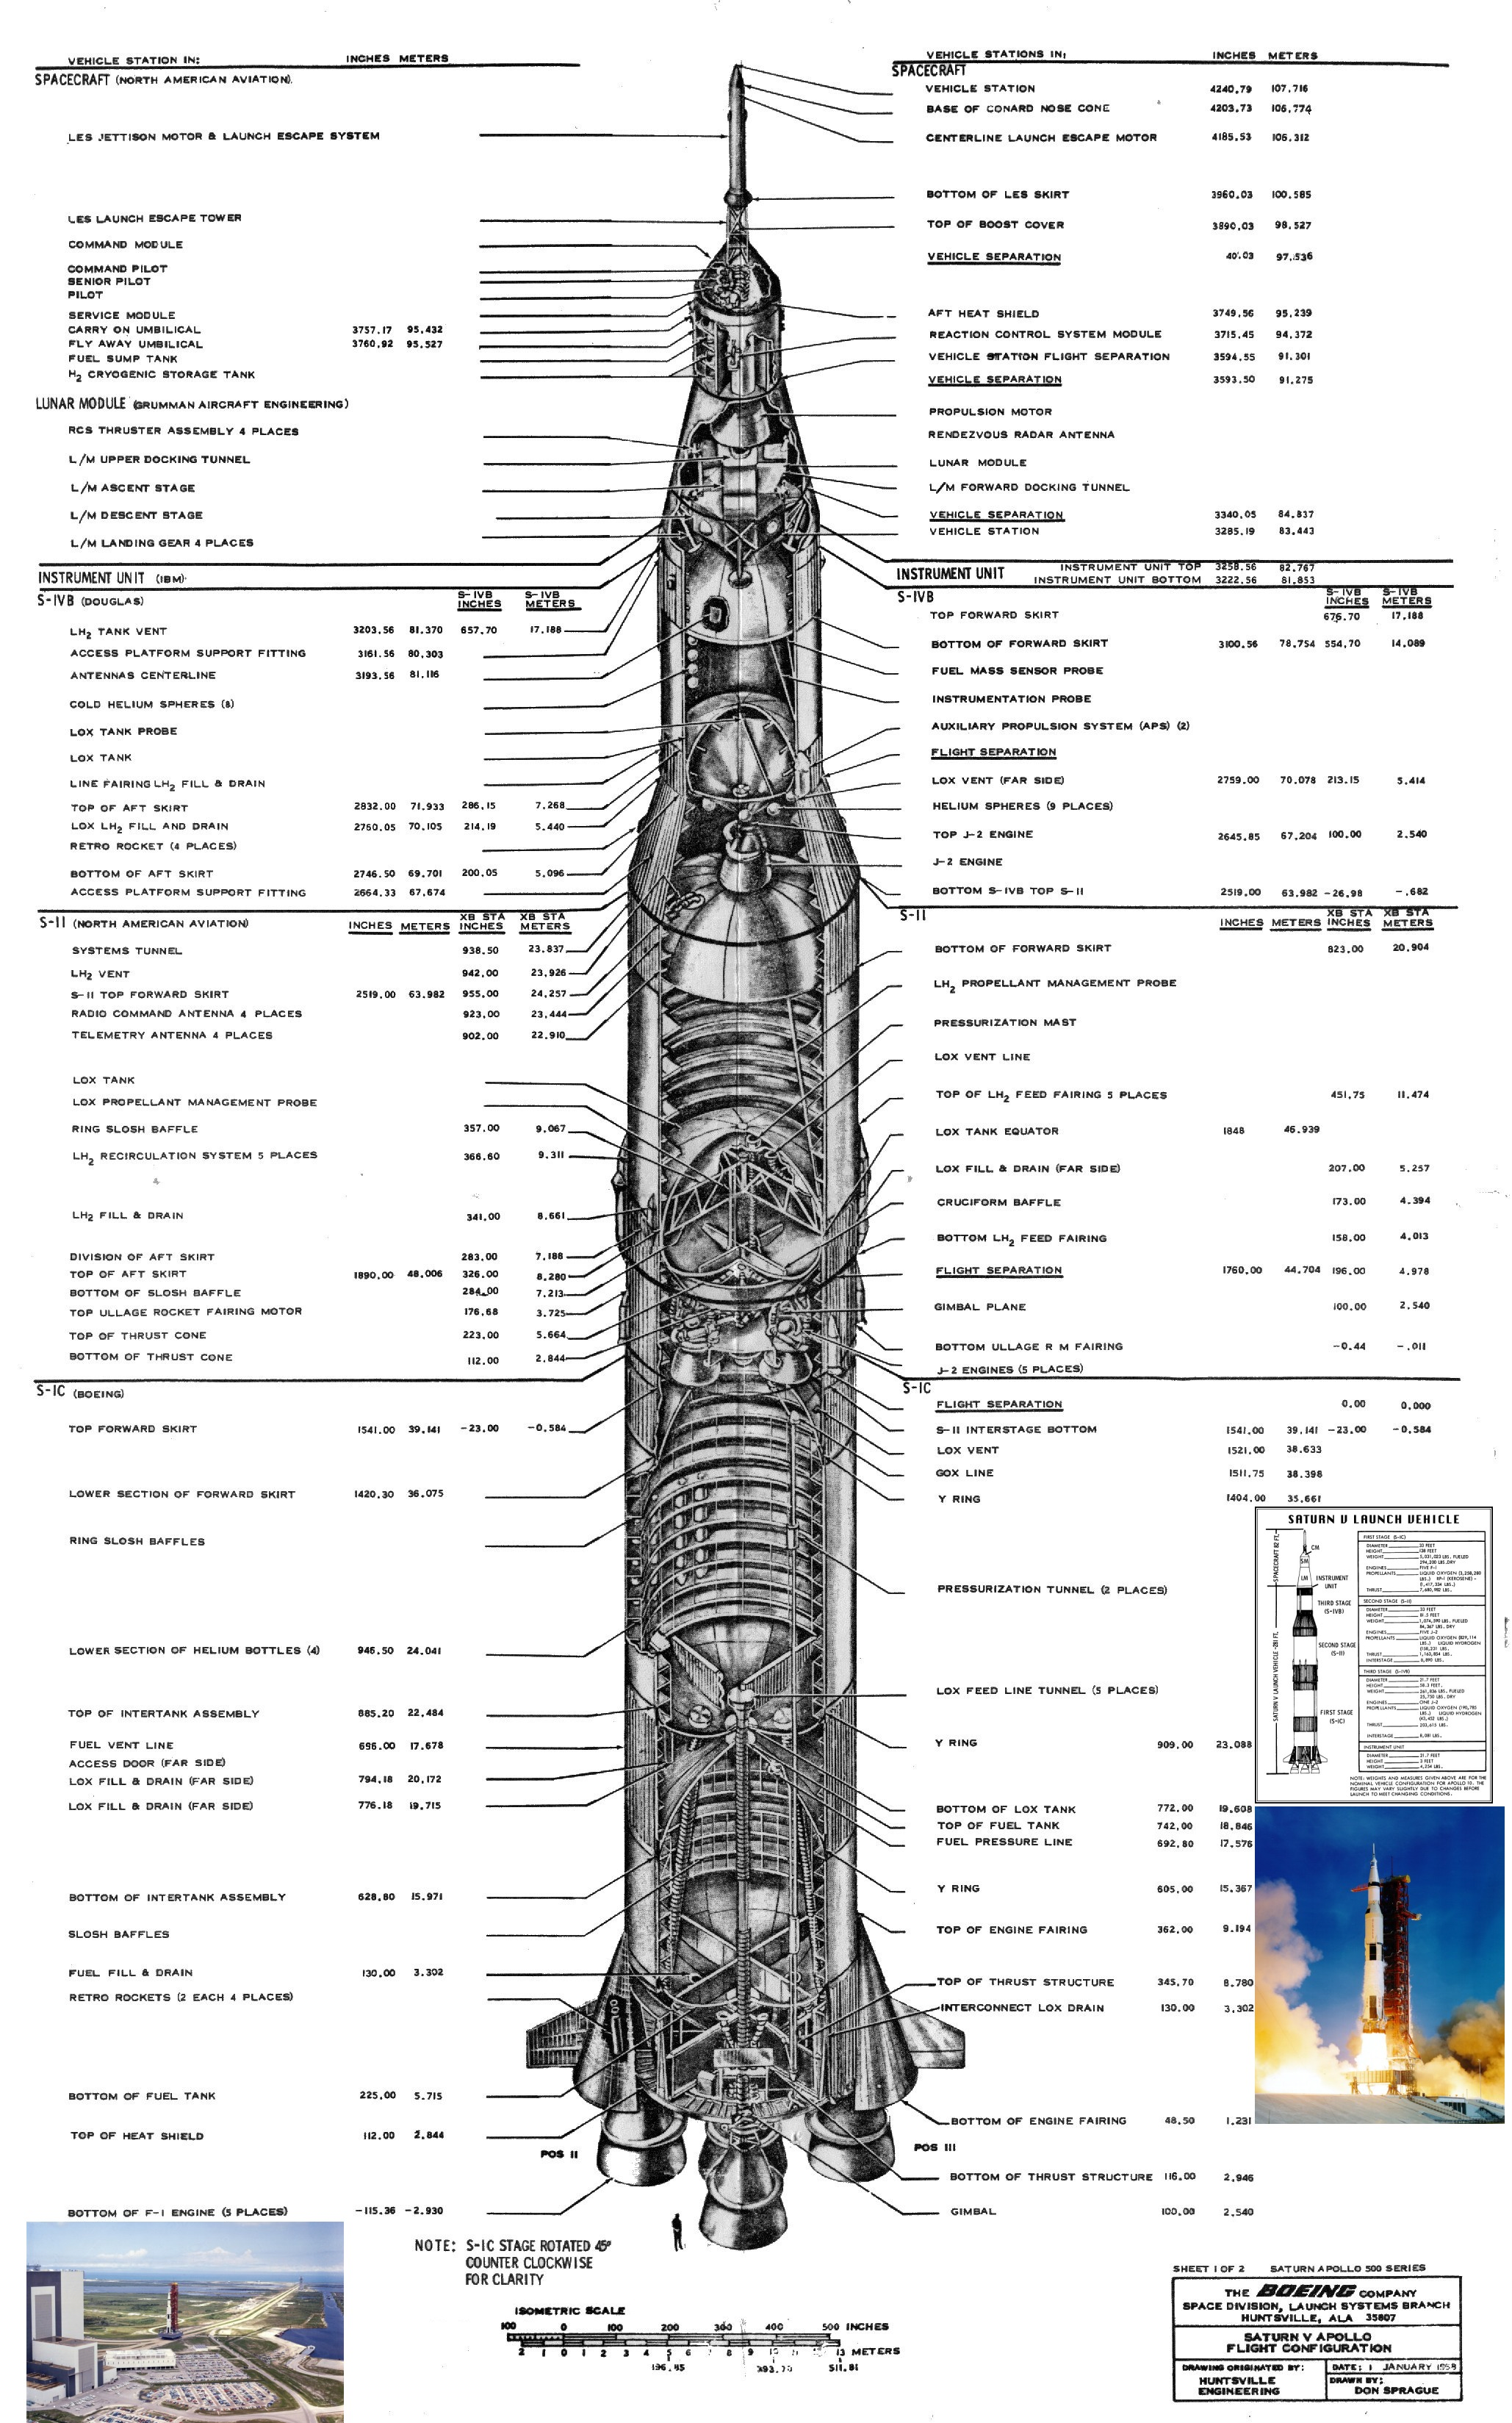 Diagram Of Saturn Series Engine